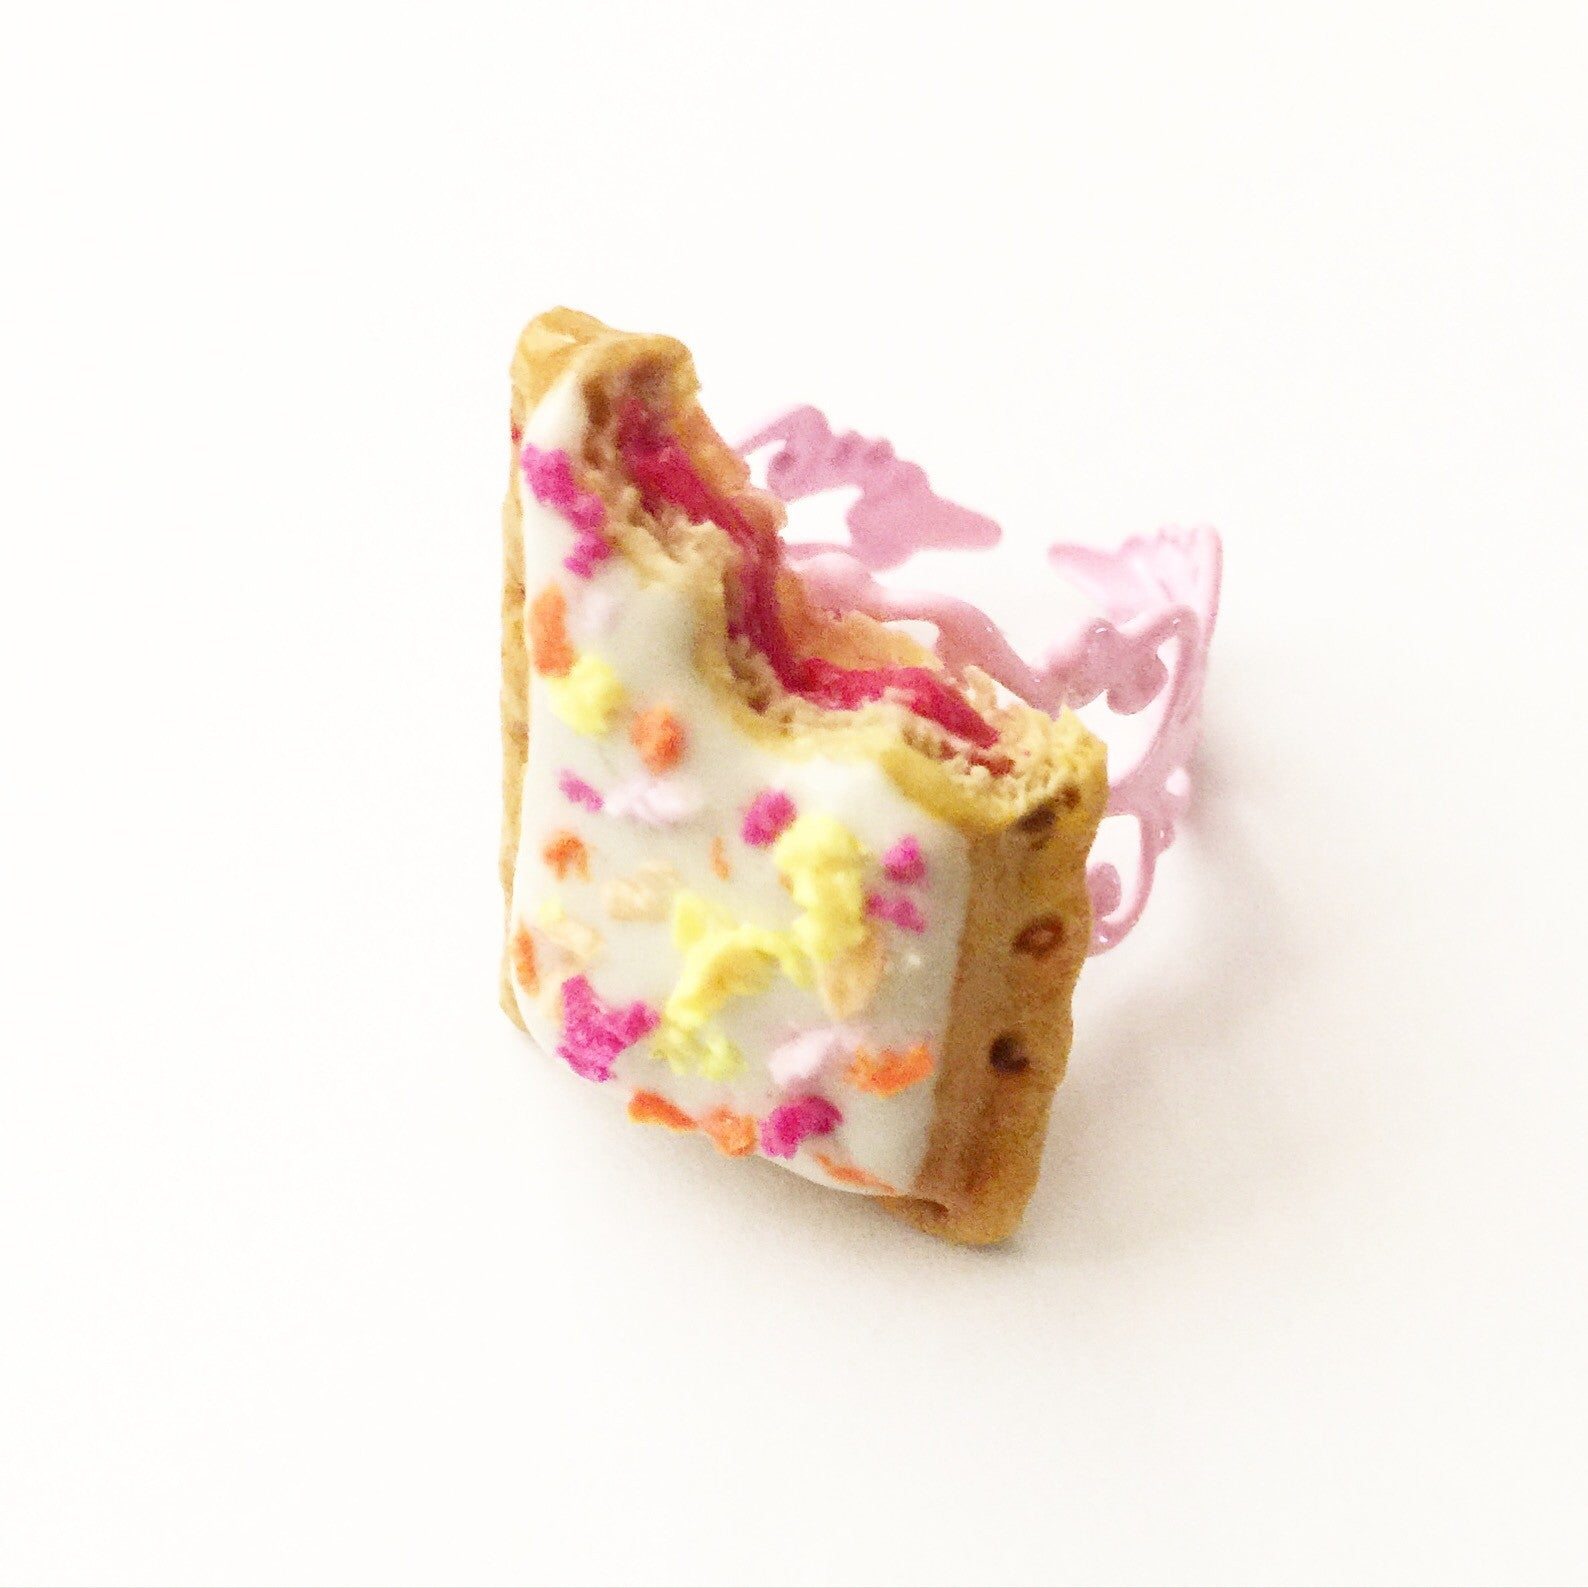 Pop Tarts Friendship Rings - Jillicious charms and accessories - 4